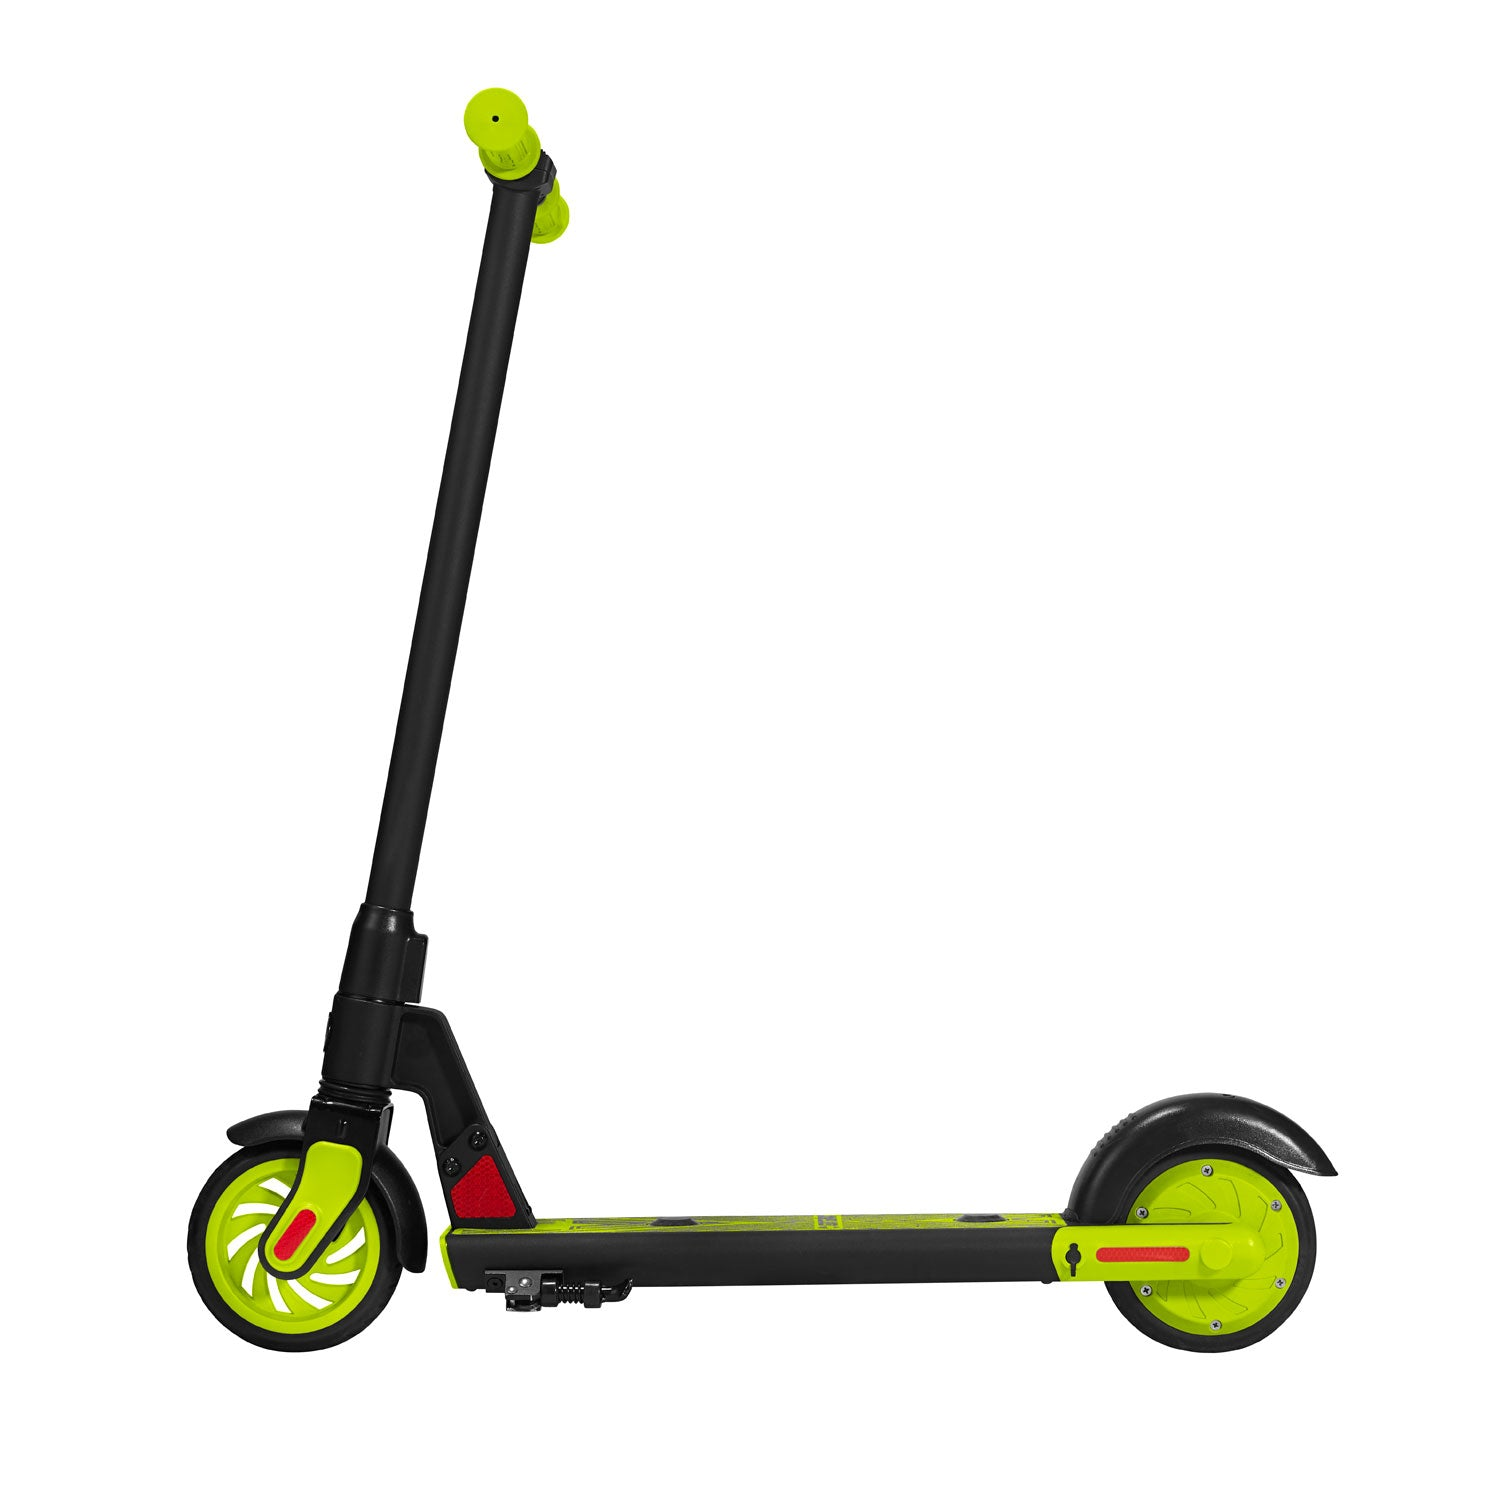 Green gks electric scooter for kids side image